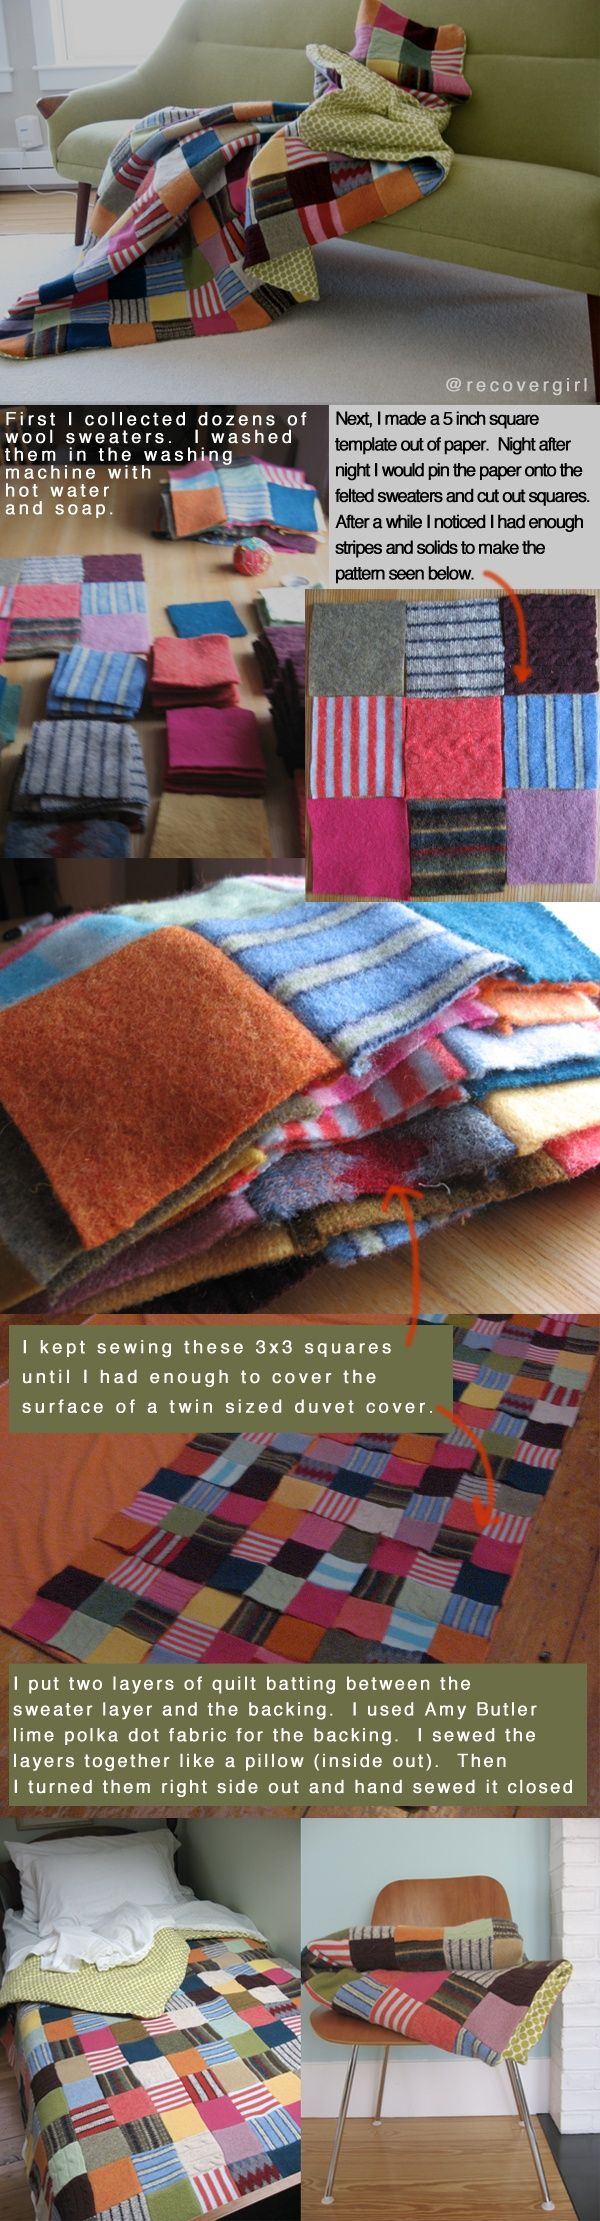 How to make an INCREDIBLY WARM felted scrap wool blanket. I'd butt the pieces together instead, and zigzag across both -- felted wool is PLENTY WARM for most humans. Maybe a strip of bias-cut silk along the back of the zigzag, to reinforce? Not sure it if it would be needed. Must experiment!